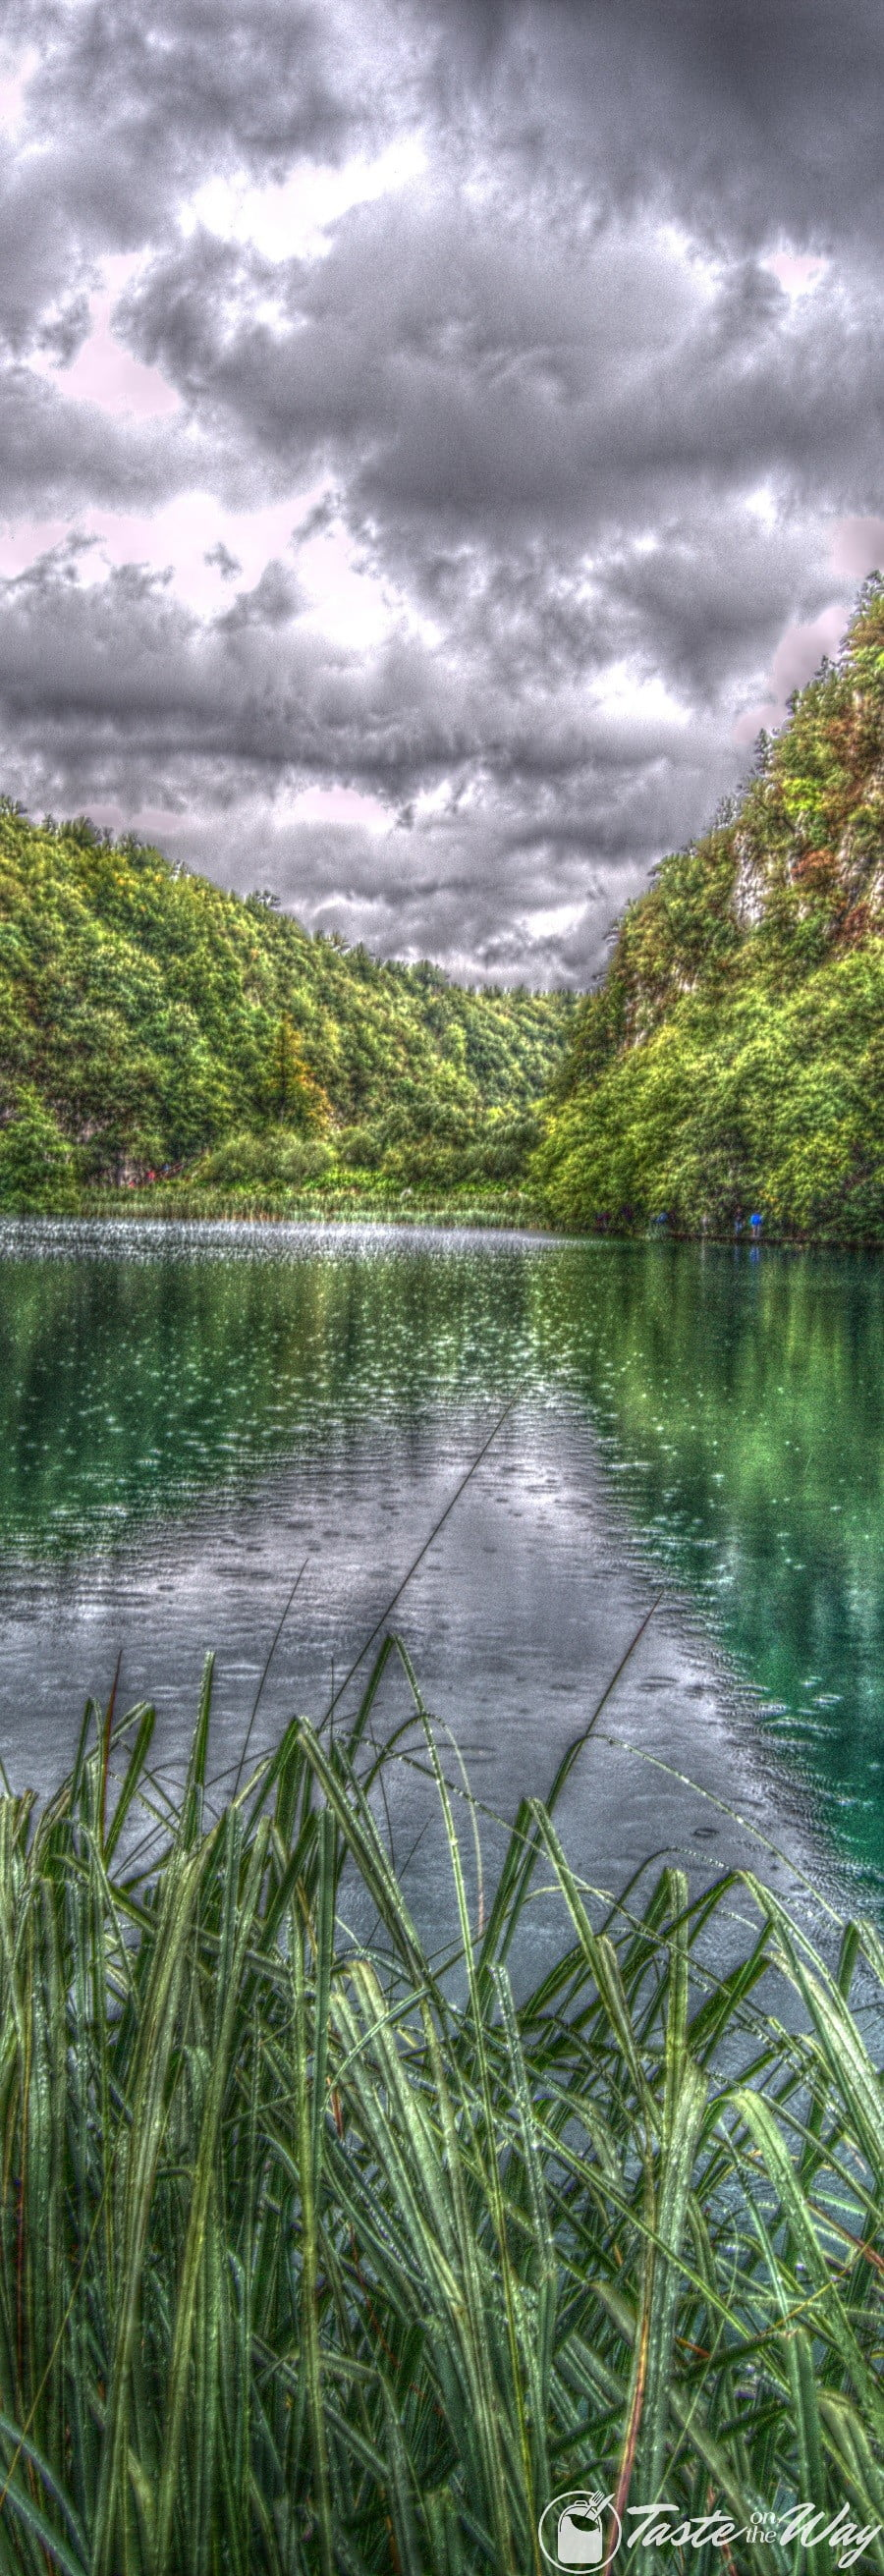 plitvice lakes national park how to get there